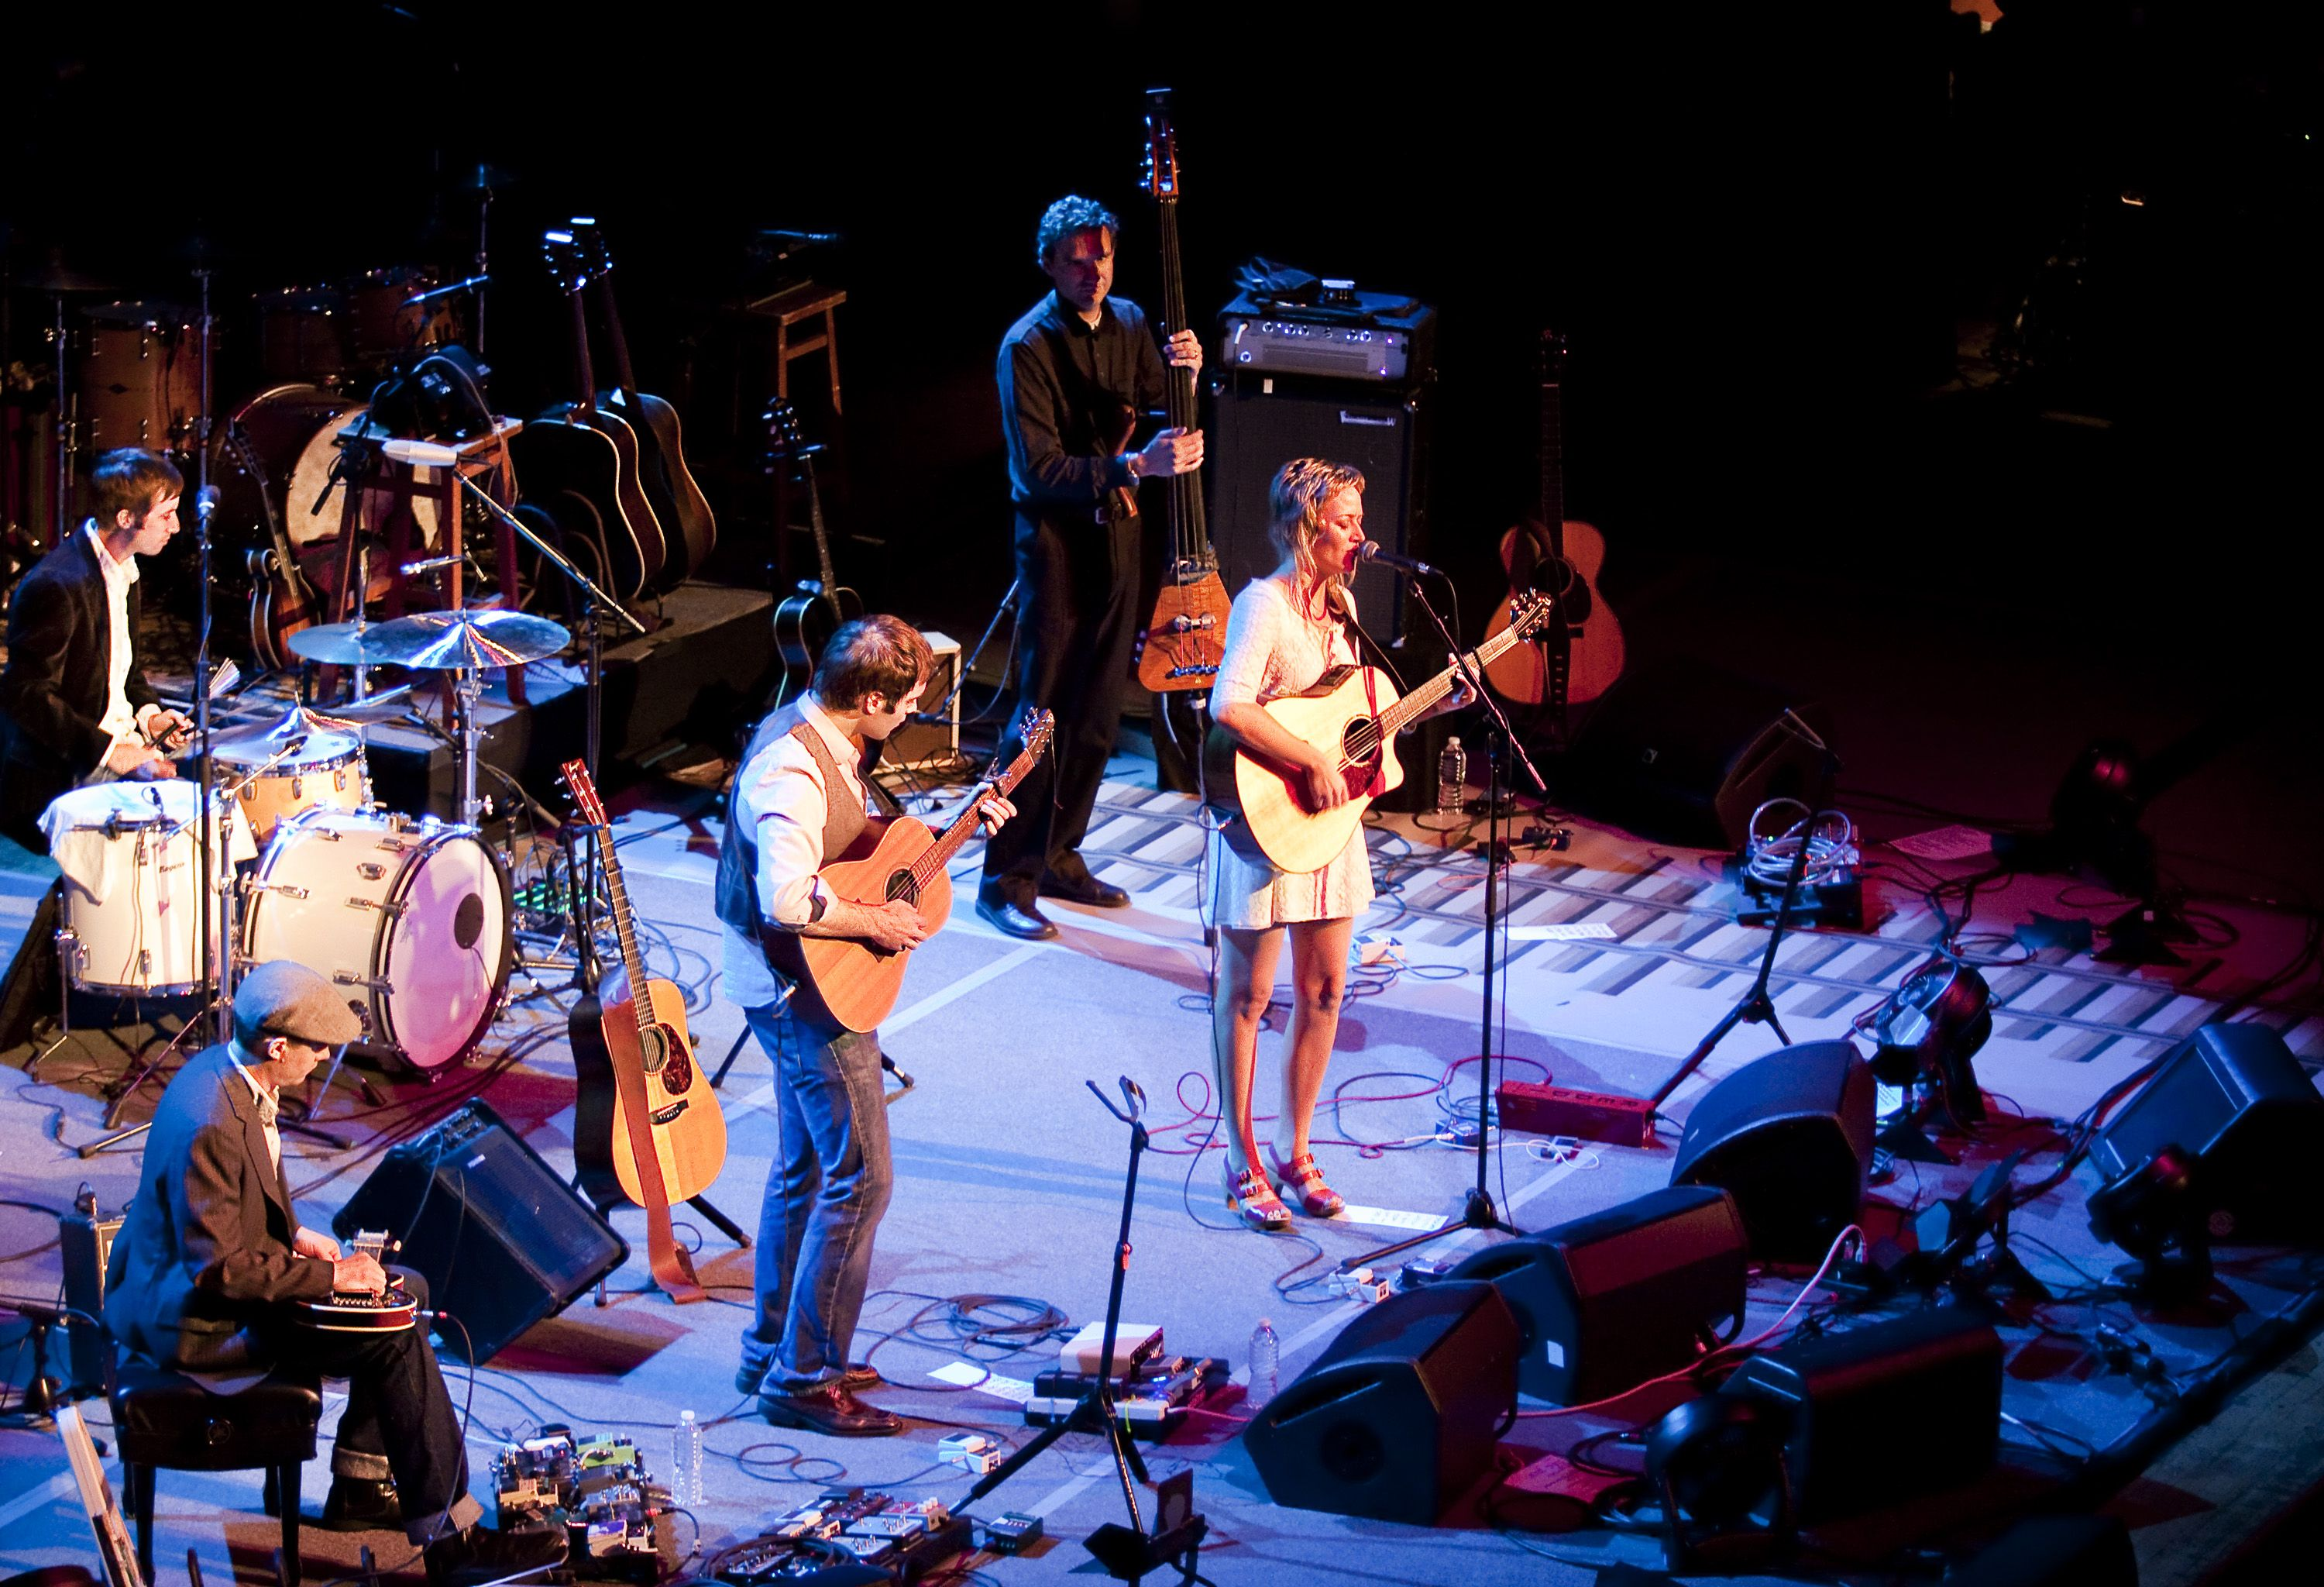 Seen Alison Krauss & Union Station live at the Cheyenne Civic Center